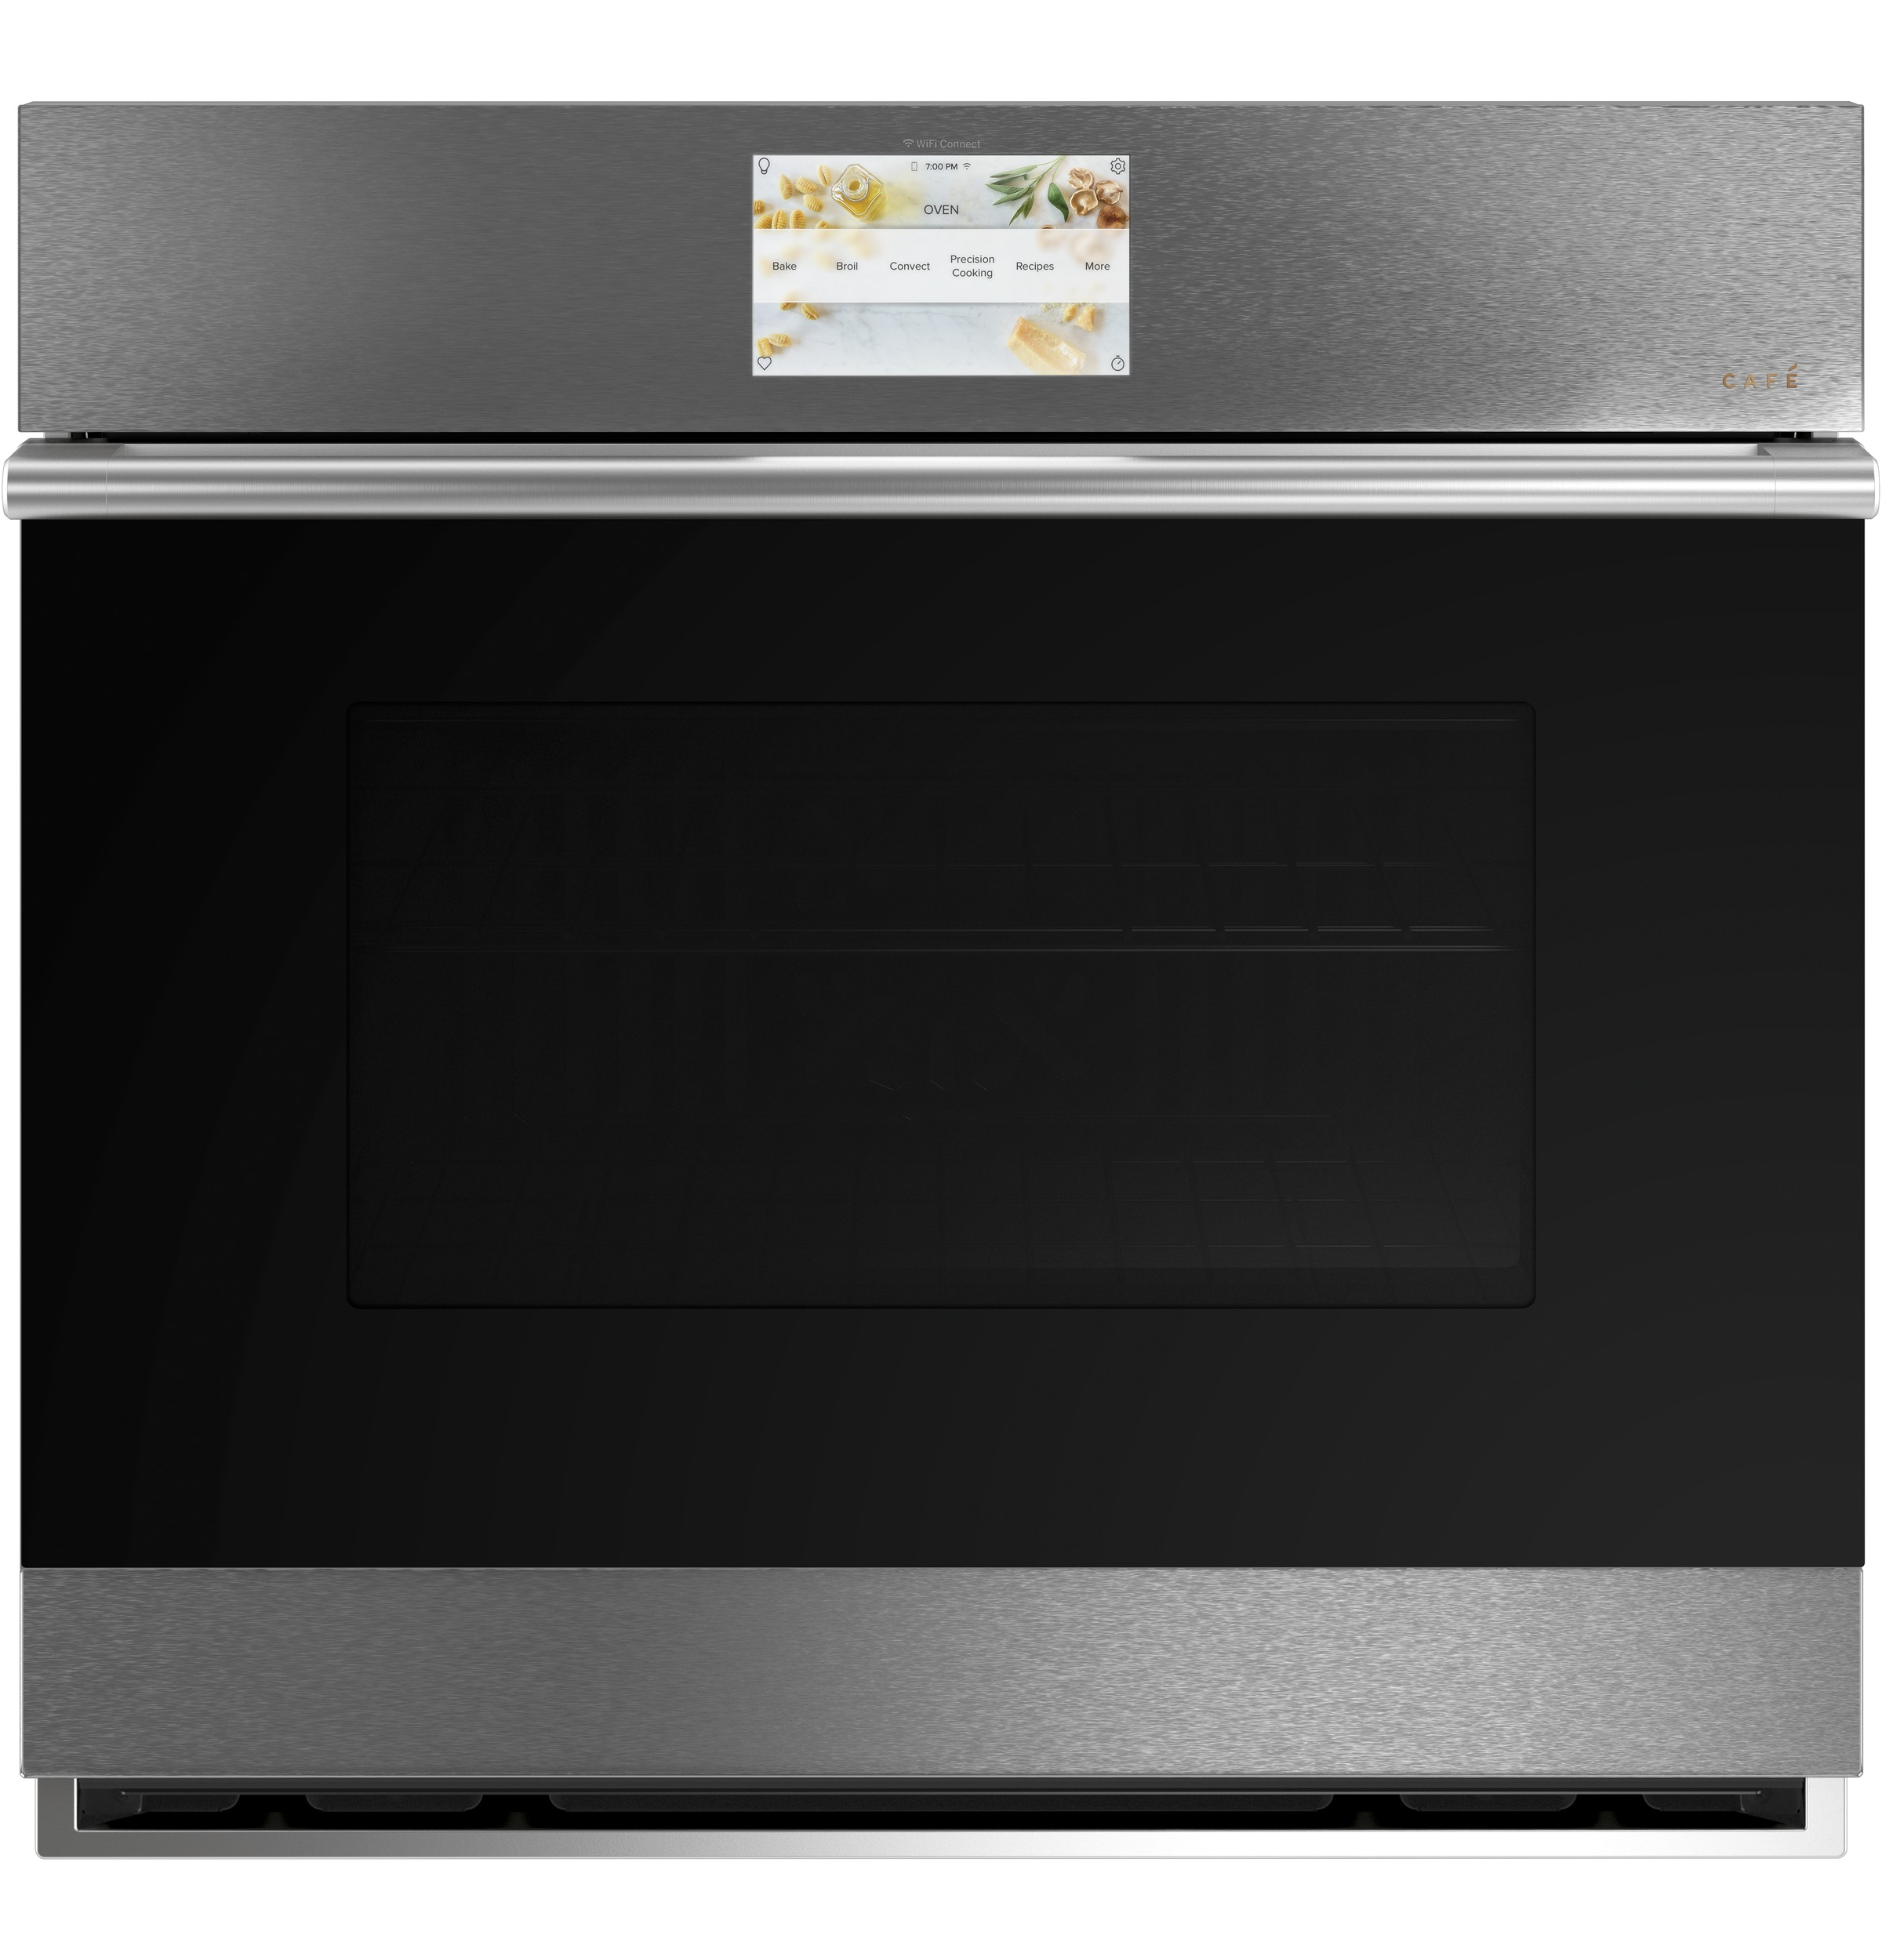 "Cafe Café™ 30"" Built-In Single Electric Convection Wall Oven"